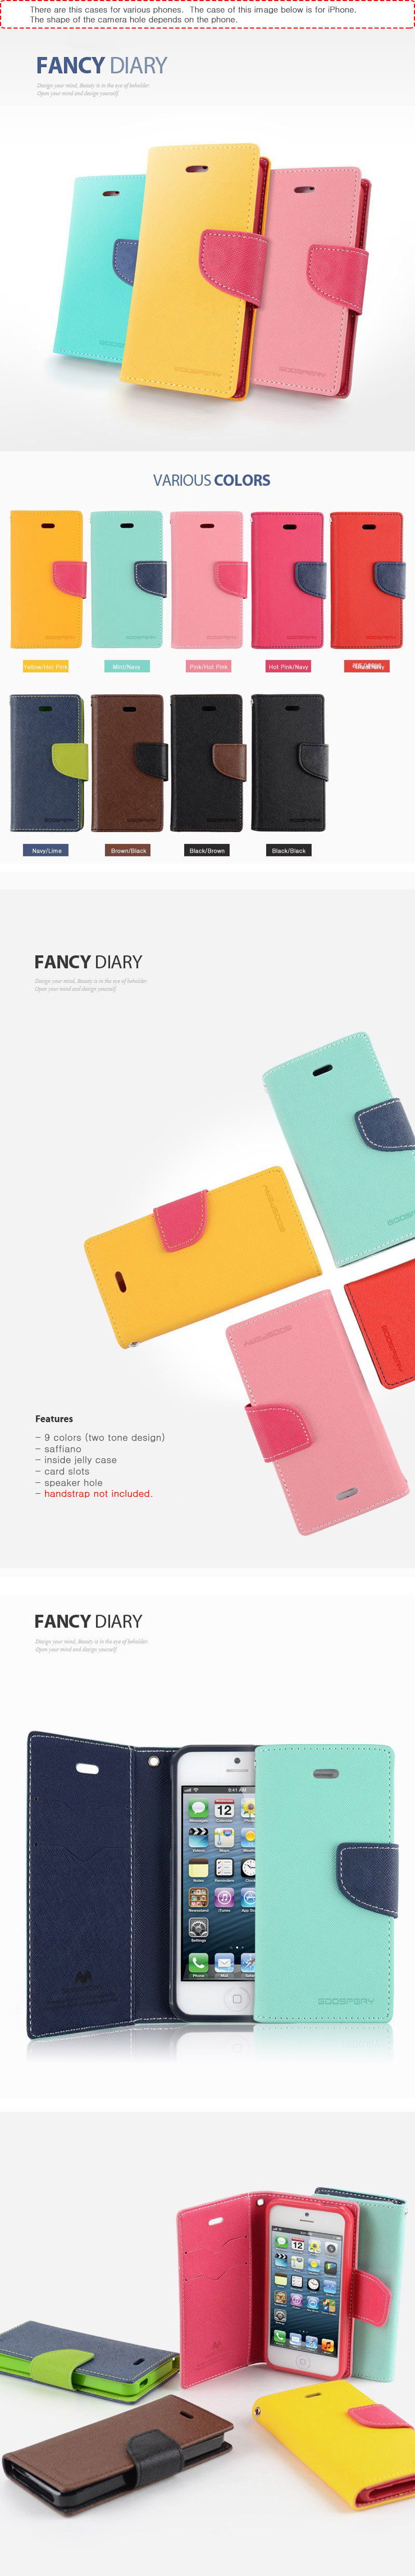 For Luna Tg L800s Case Fancy Diary Wallet Yellow Navy Red Goospery Iphone 7 Brown Black Categories